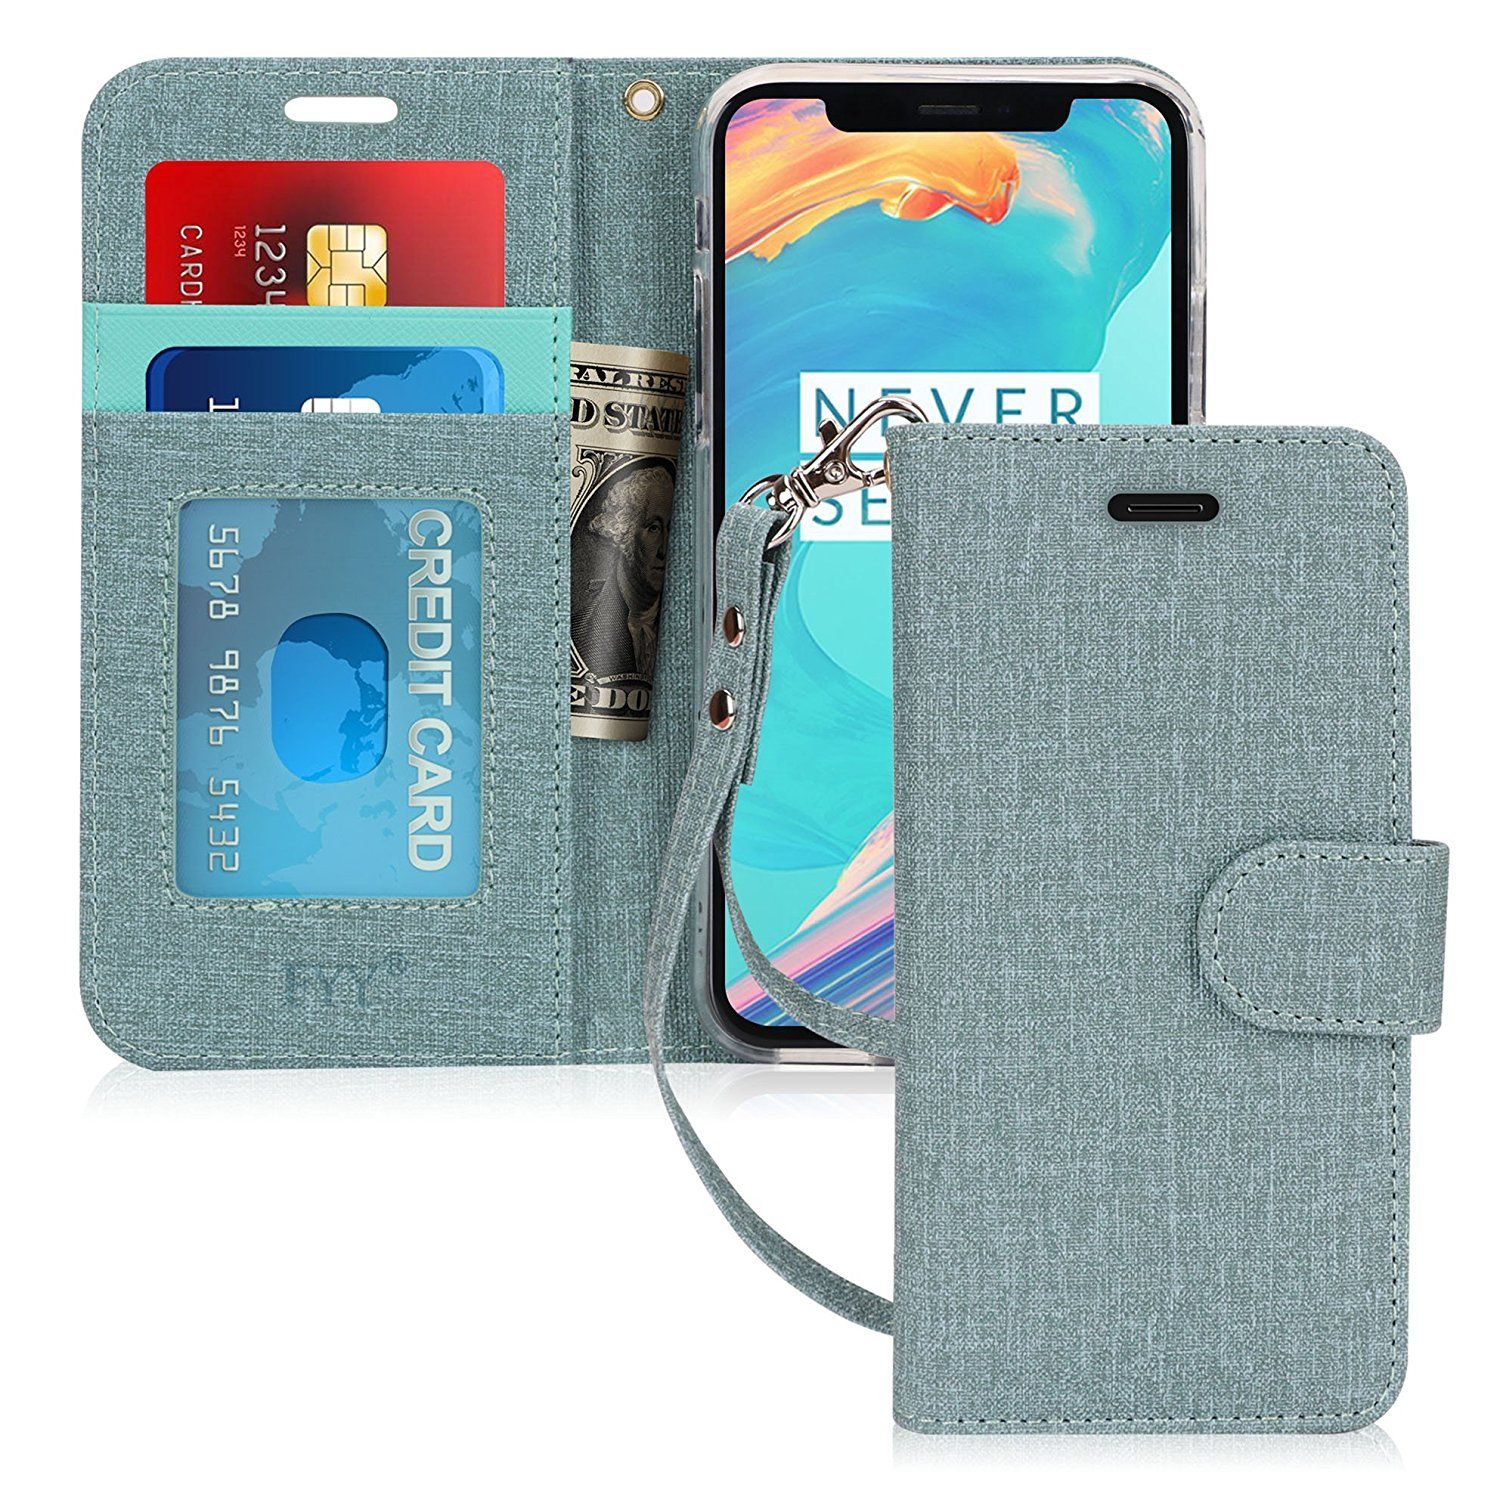 Fyy case for iphone xs 58 2018iphone x10 2017 rfid